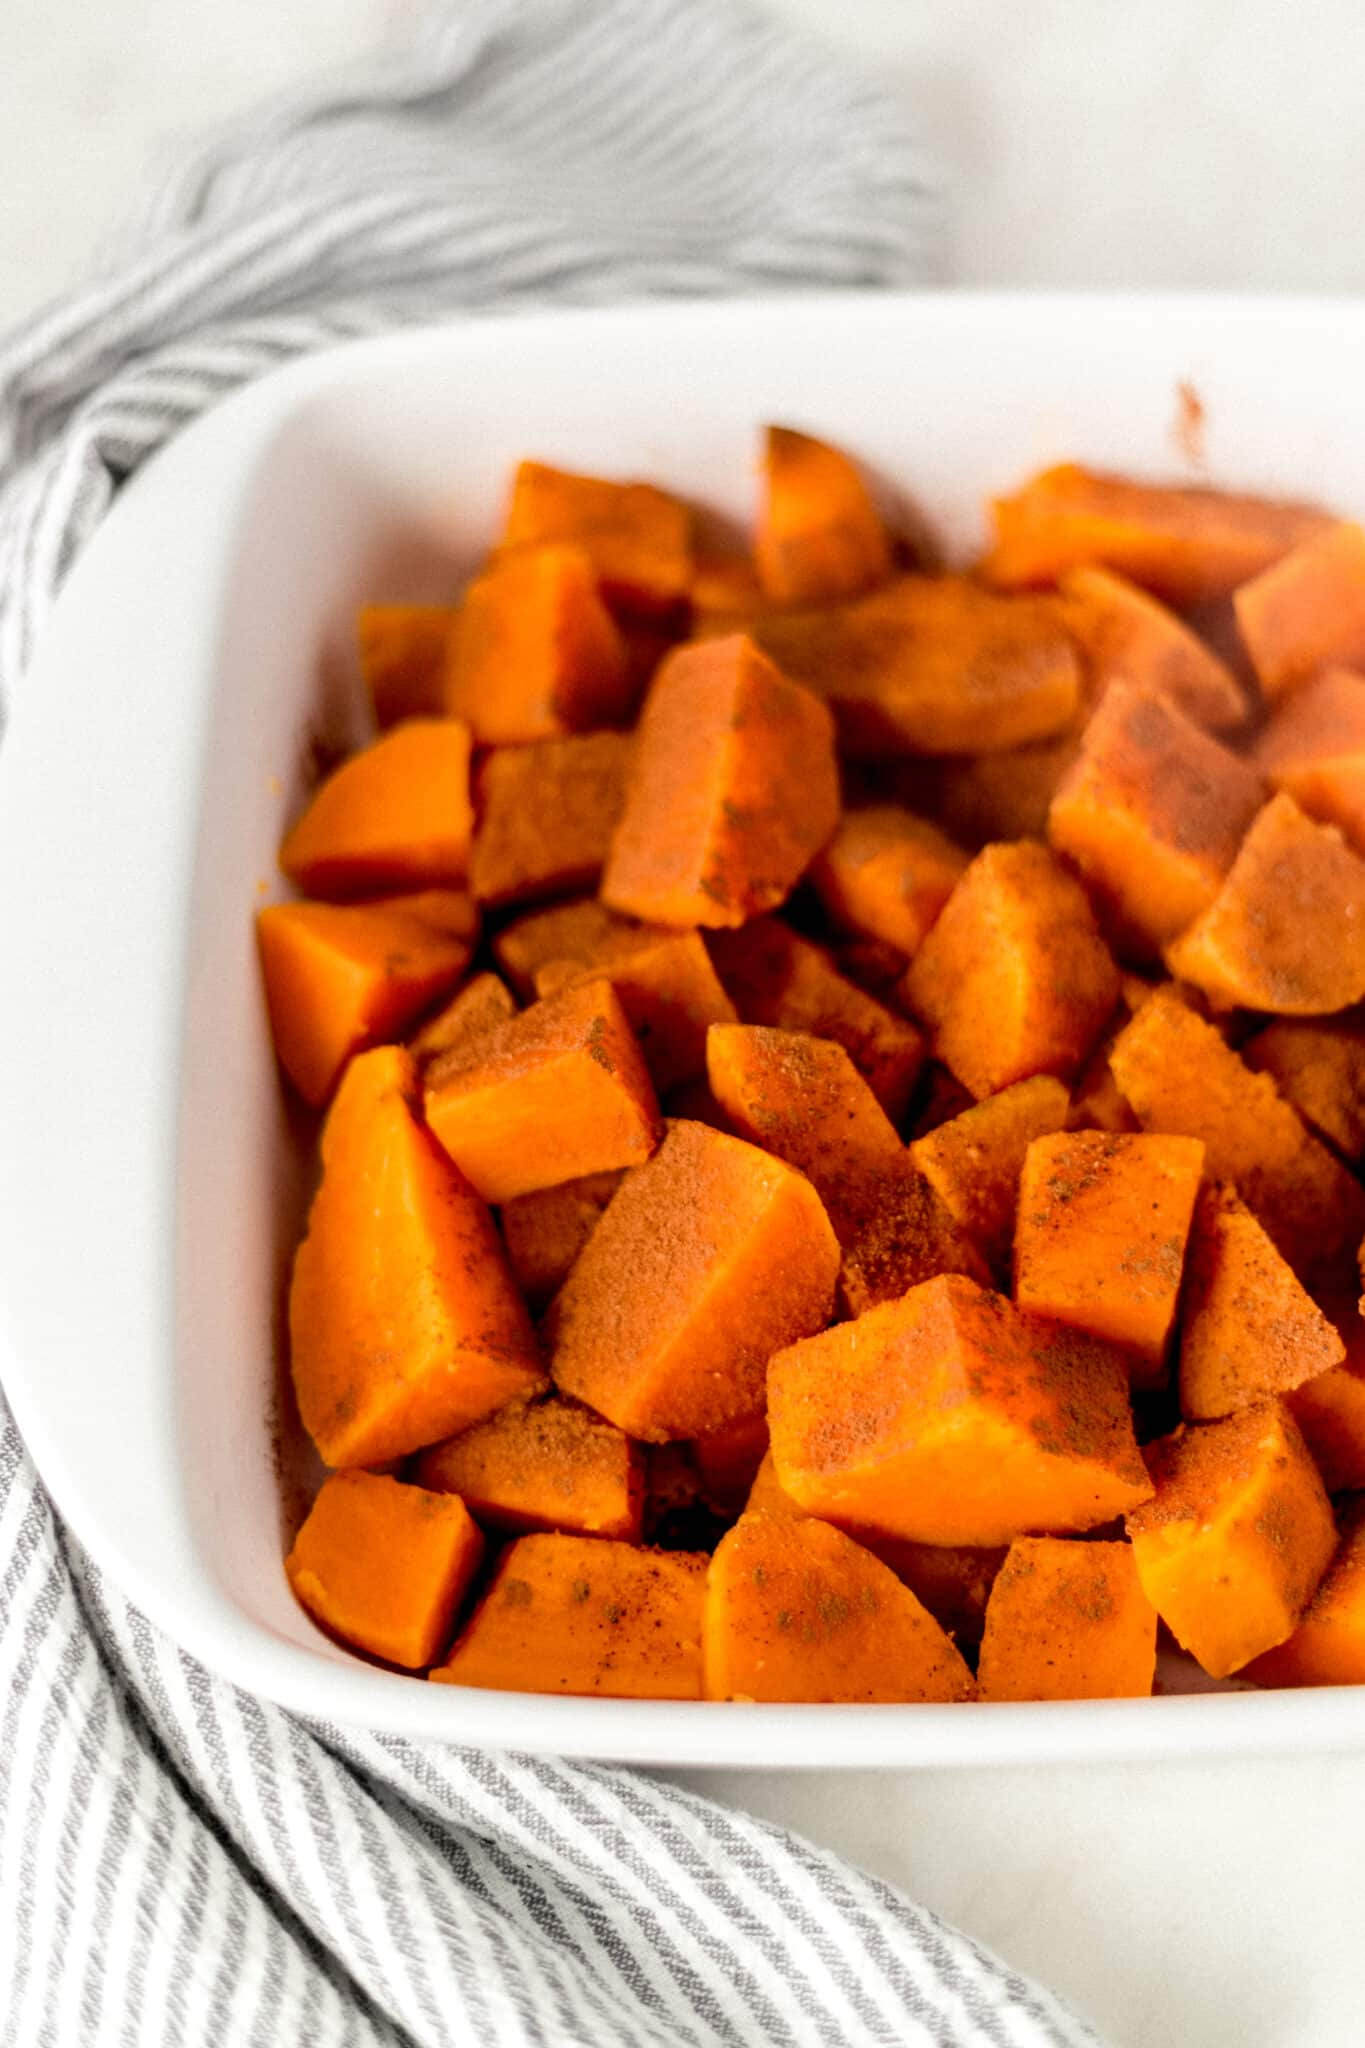 yams in a white baking dish sprinkled with cinnamon and nutmeg